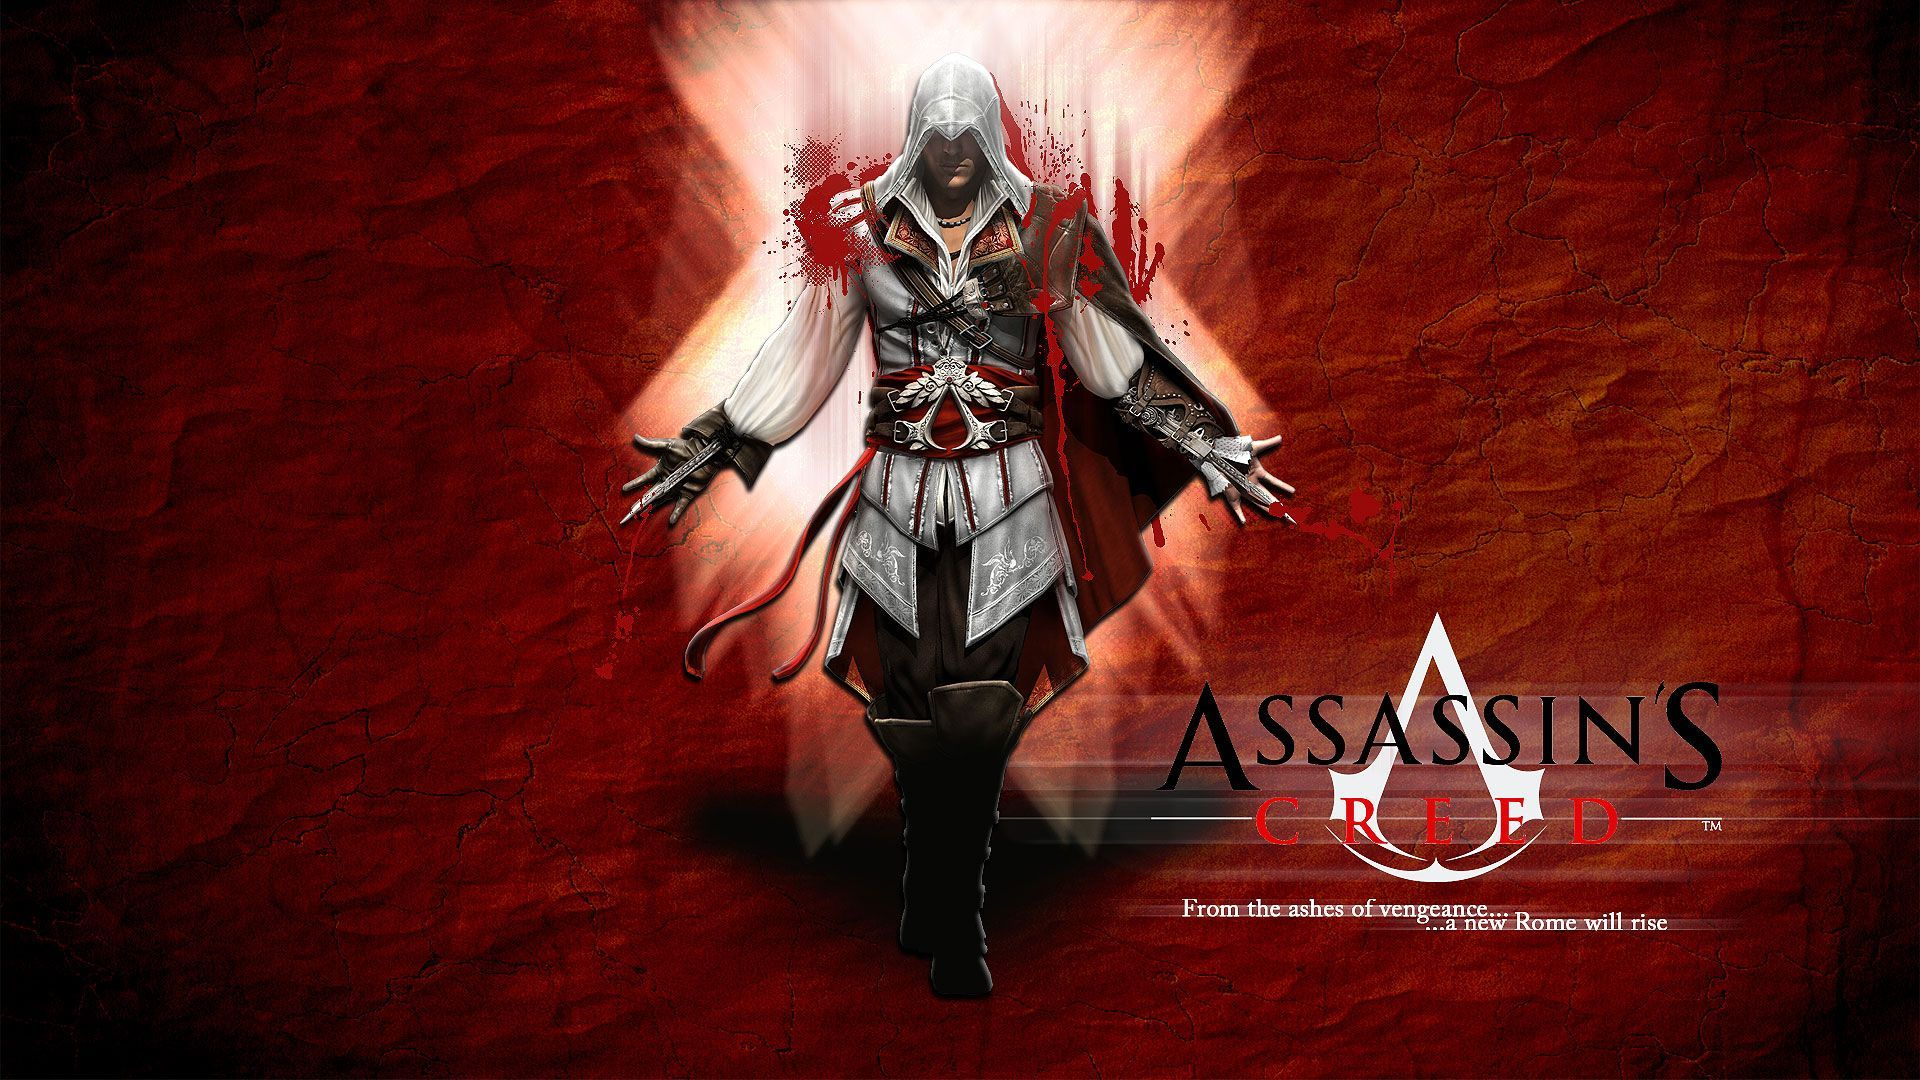 Assassins Creed Desktop Backgrounds  Wallpaper  1920x1080